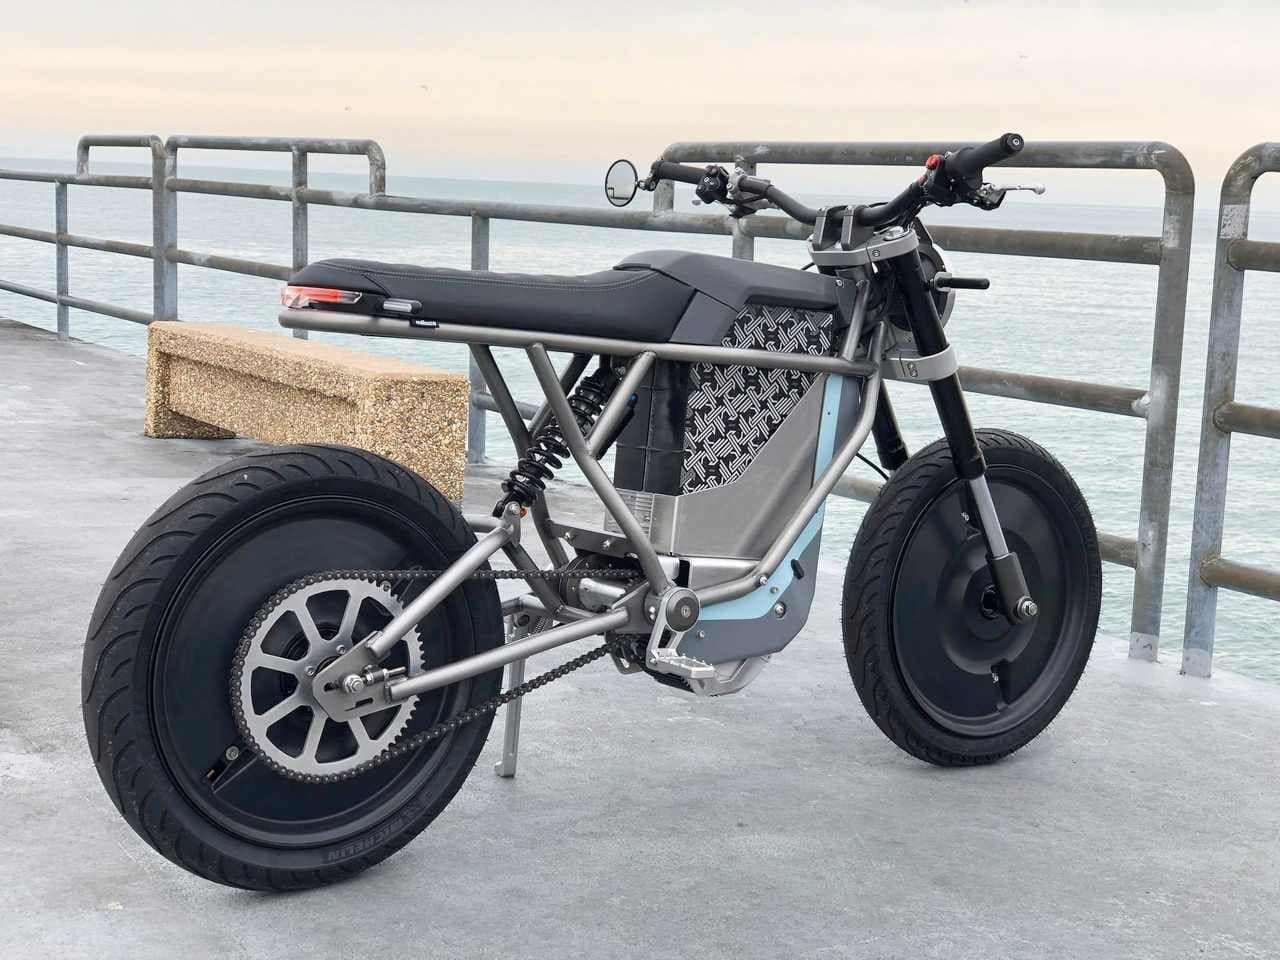 Cleveland CycleWerksの電動バイク「FALCON BLK」